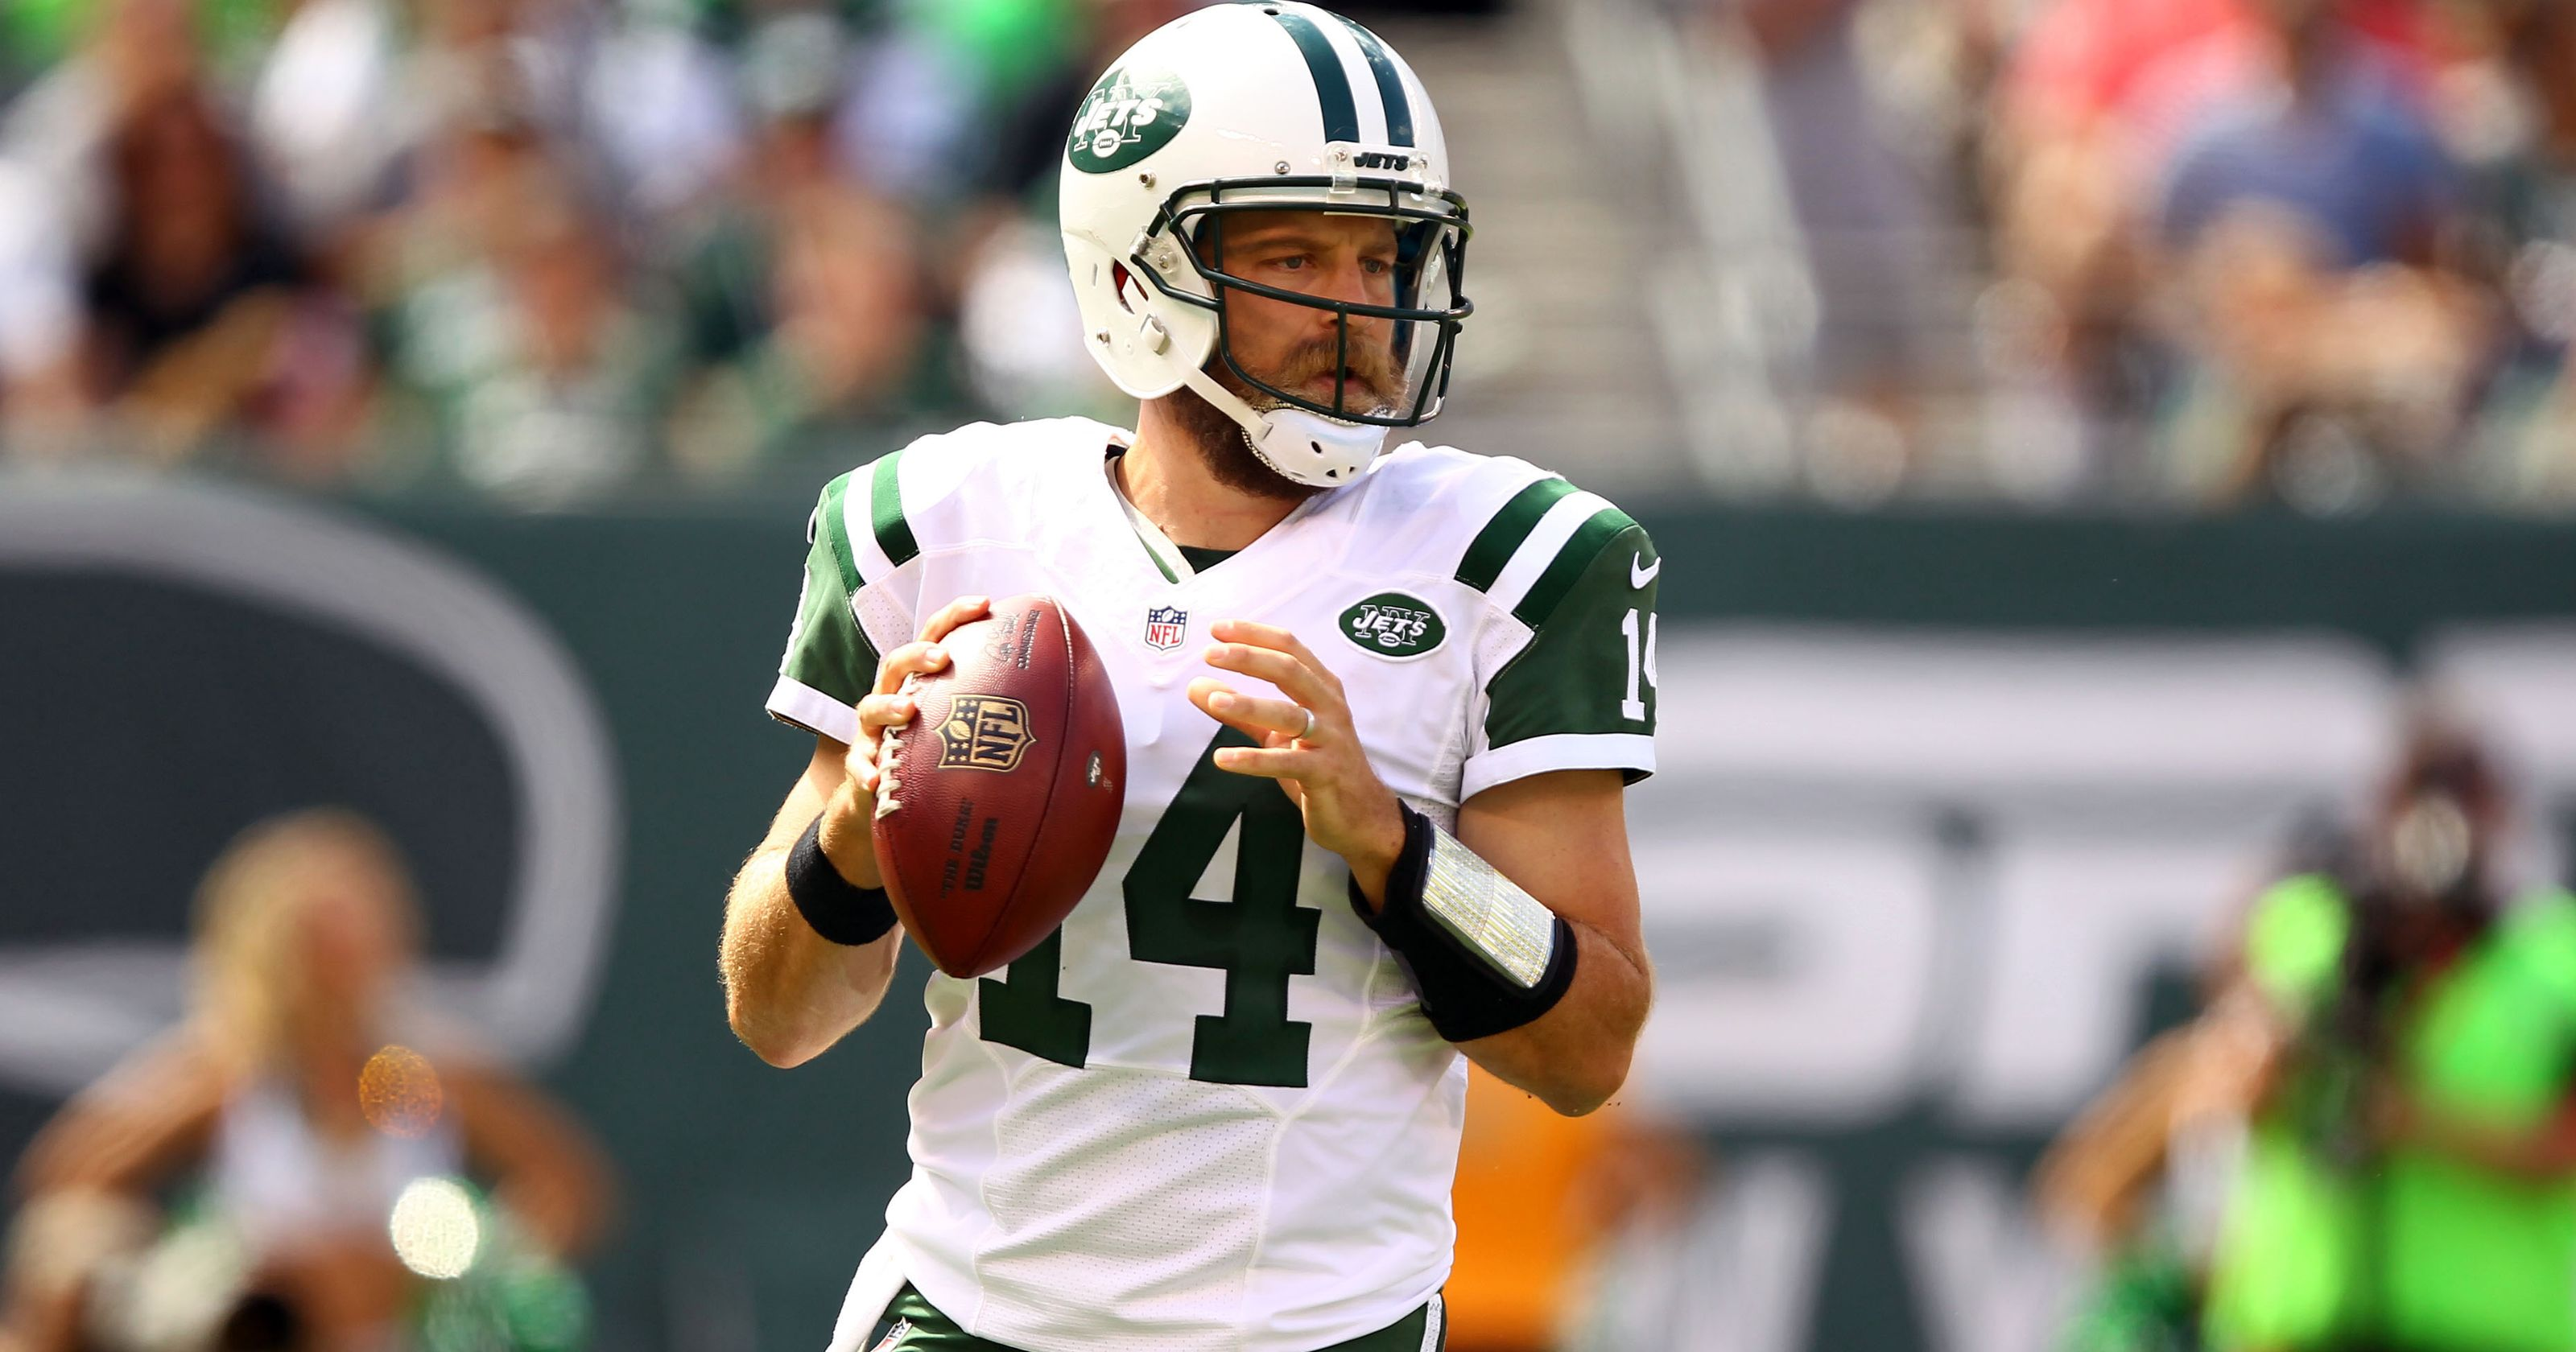 635785377622913750-USP-NFL-CLEVELAND-BROWNS-AT-NEW-YORK-JETS-75856258